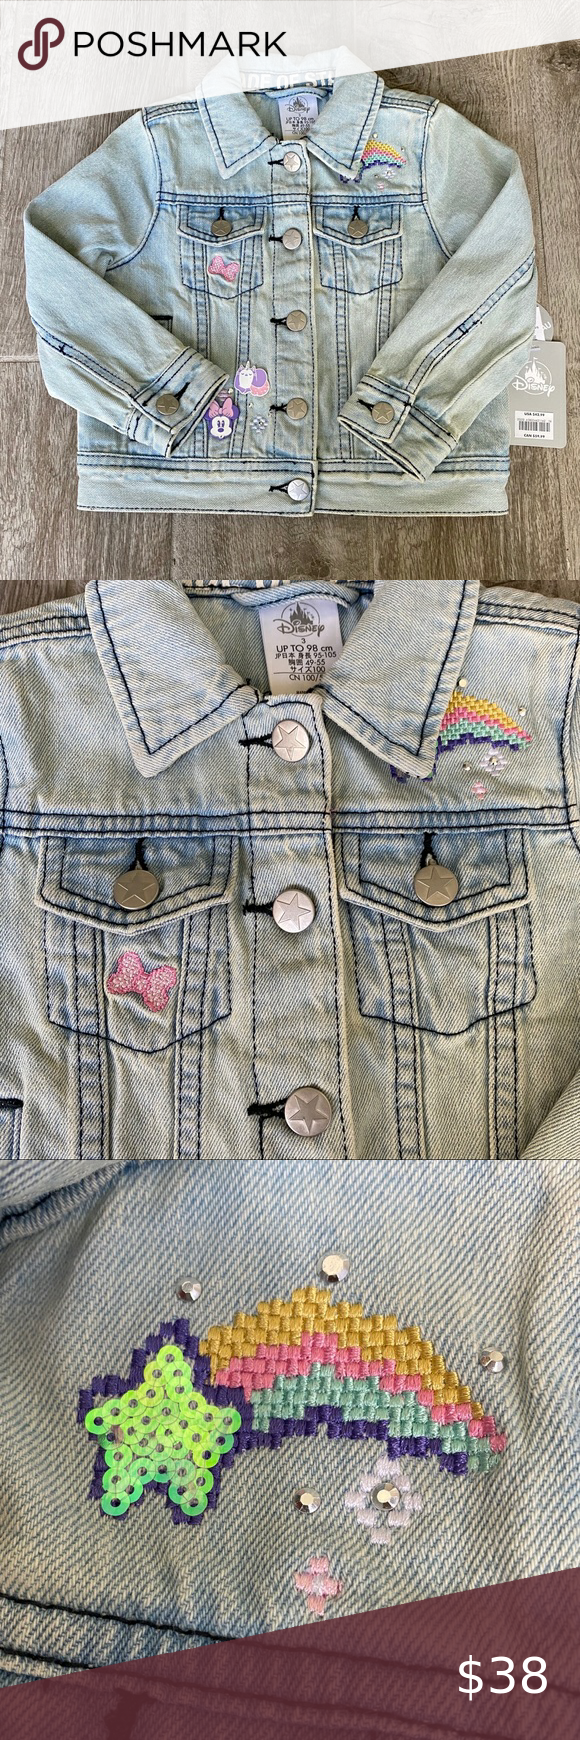 Nwt Disney Minnie Mouse Toddler Jean Jacket 3t Toddler Jeans Disney Jacket Jean Jacket [ 1740 x 580 Pixel ]